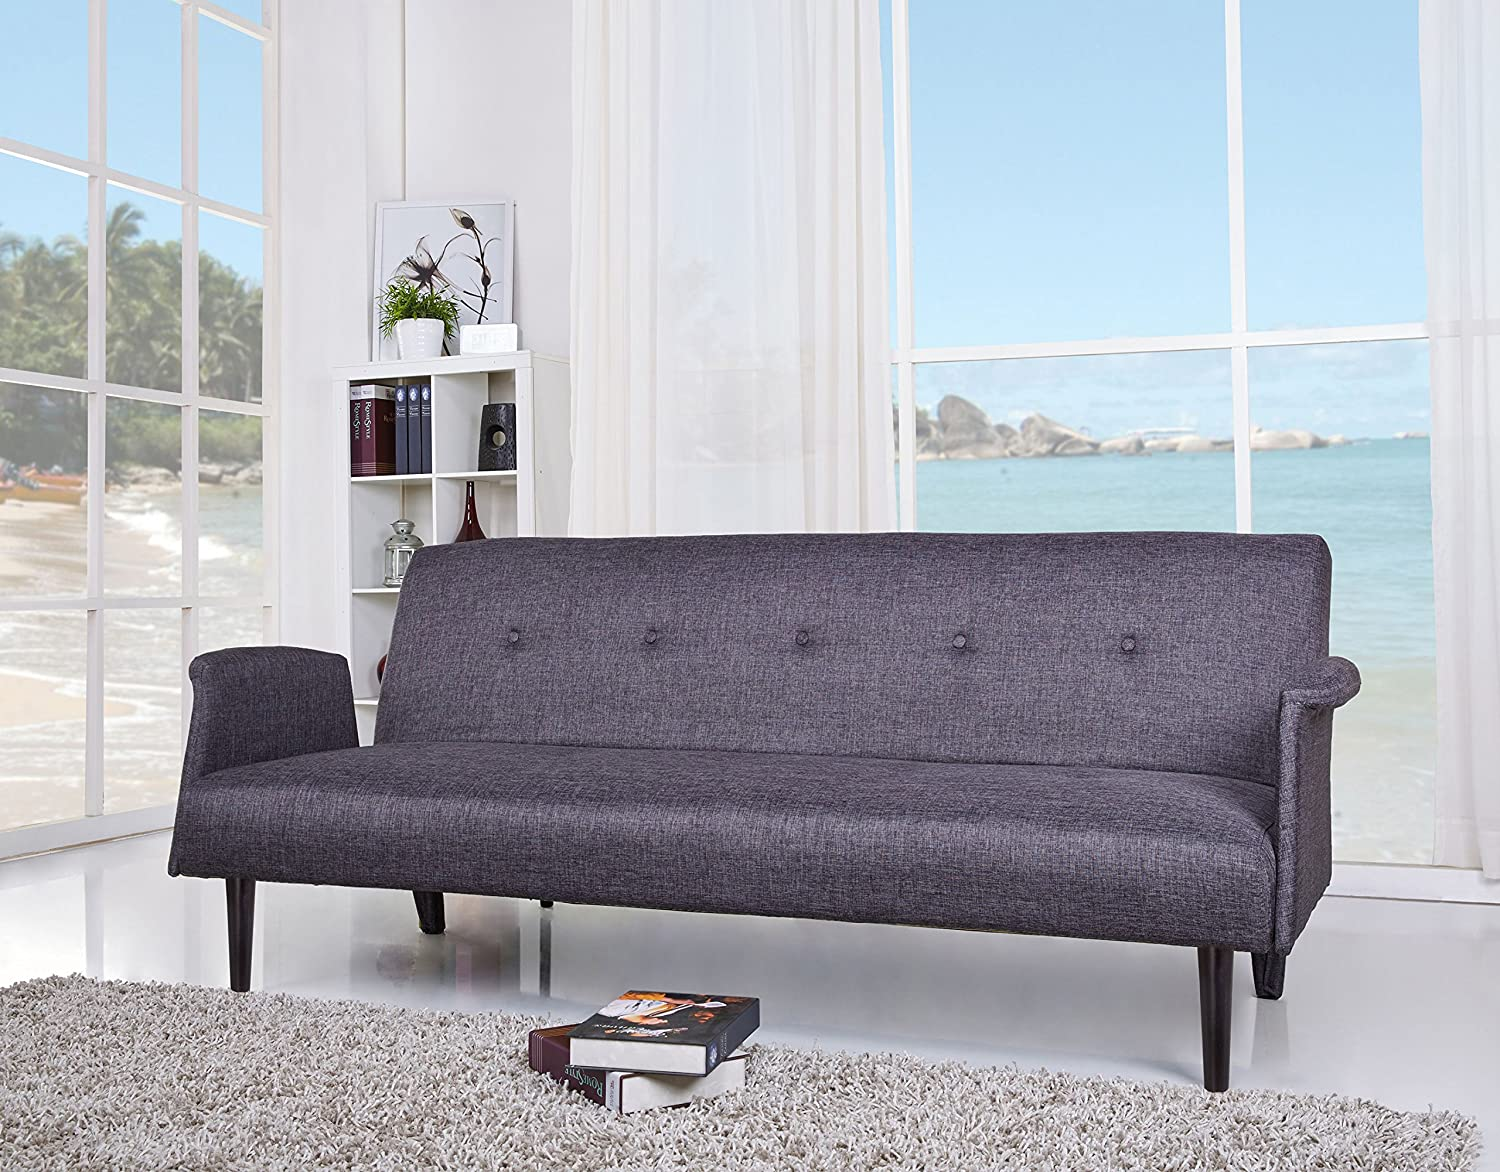 Gold Sparrow Westminster Convertible Sofa Bed - Dark Gray